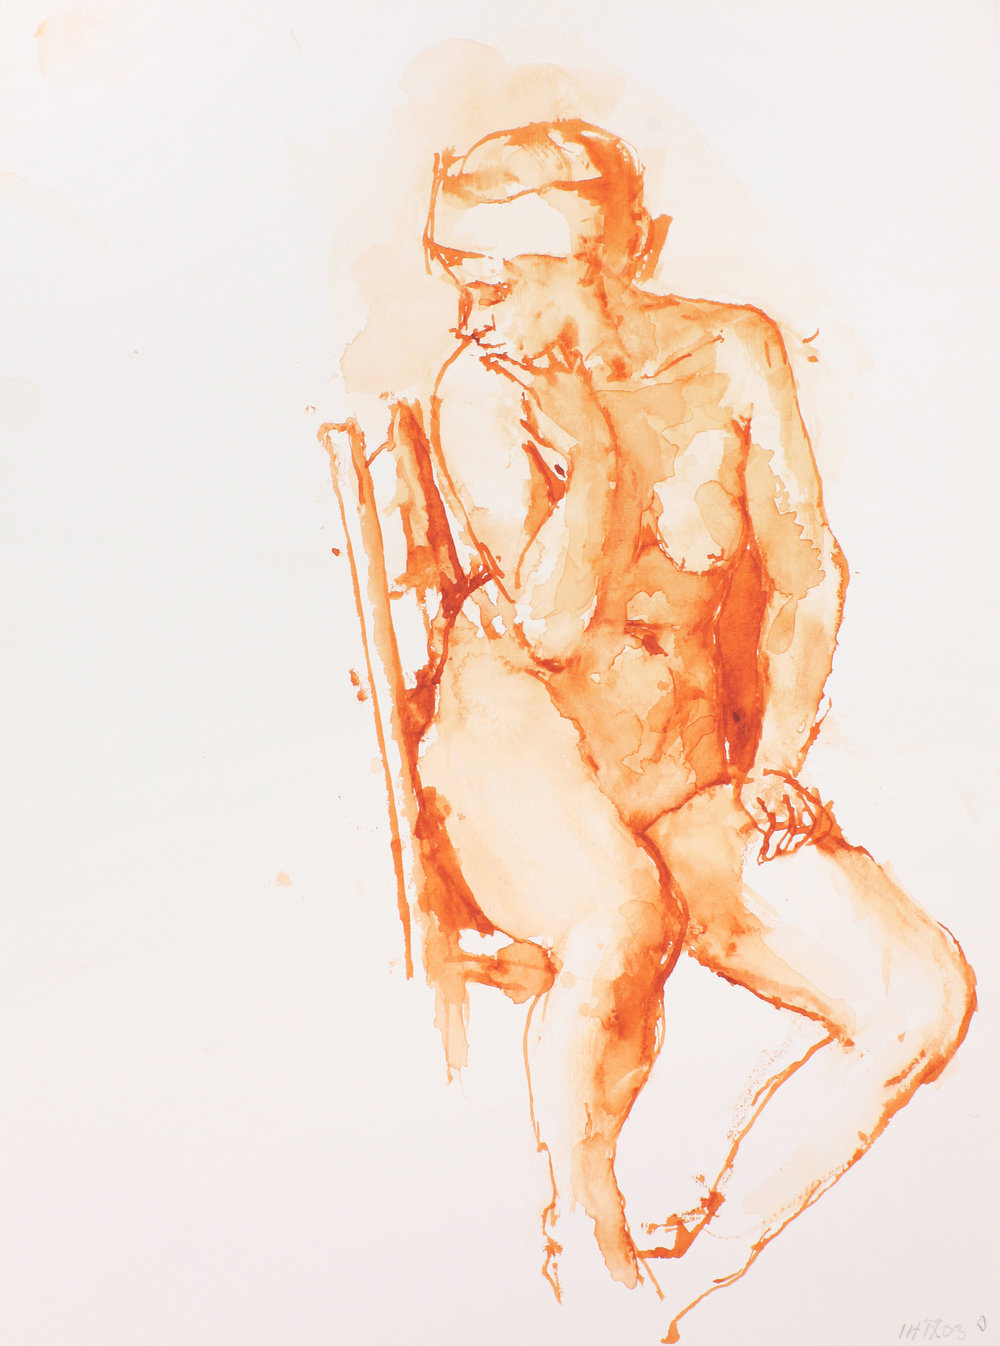 2003_Seated_Nude_on_High_Back_Chair_with_Head_Turned_to_Left_watercolour_on_paper_15x11in_WPF233.jpg